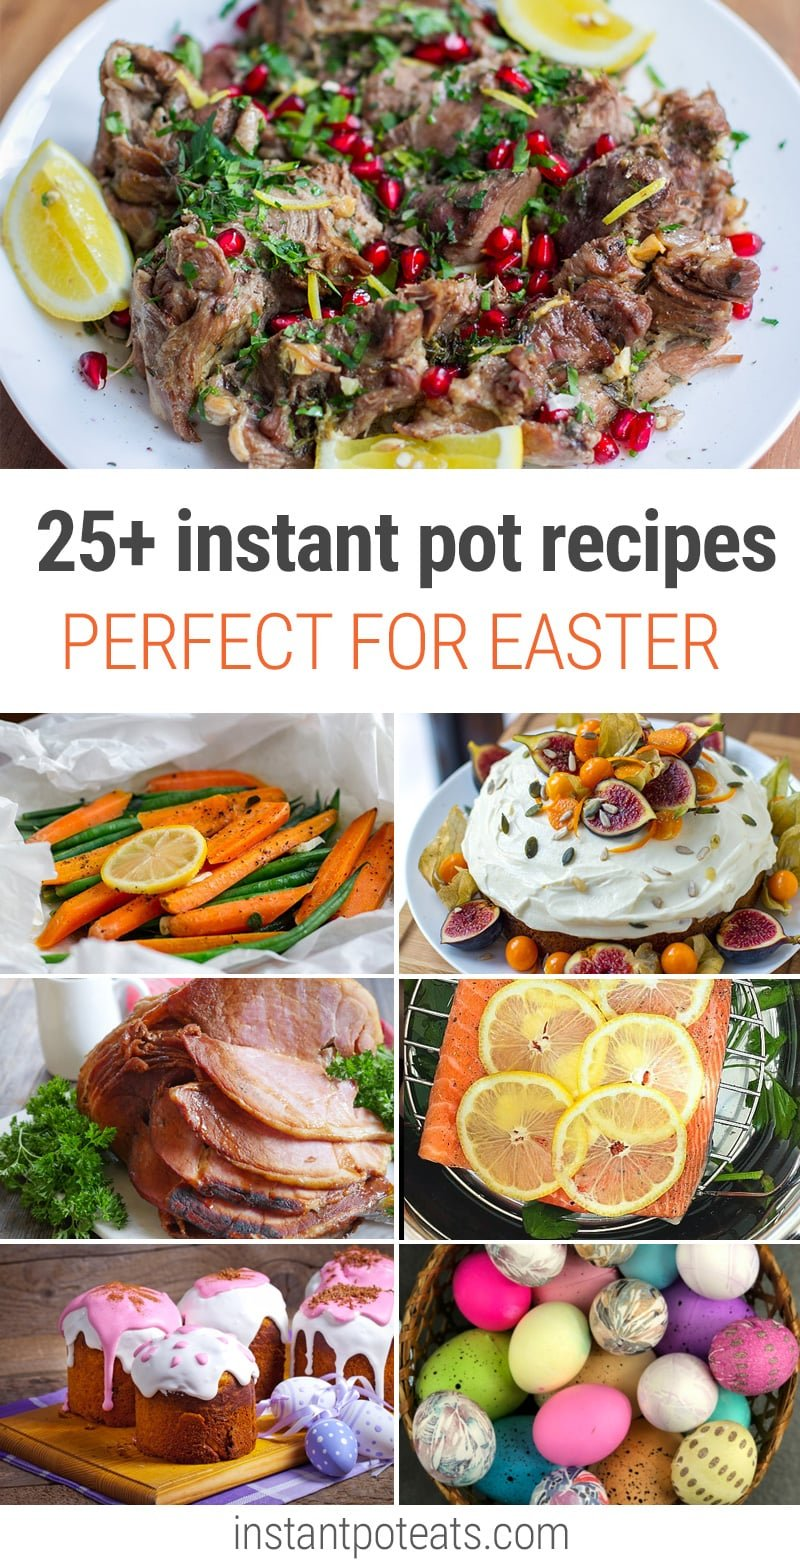 25+ Instant Pot Easter Recipes including savory and desserts